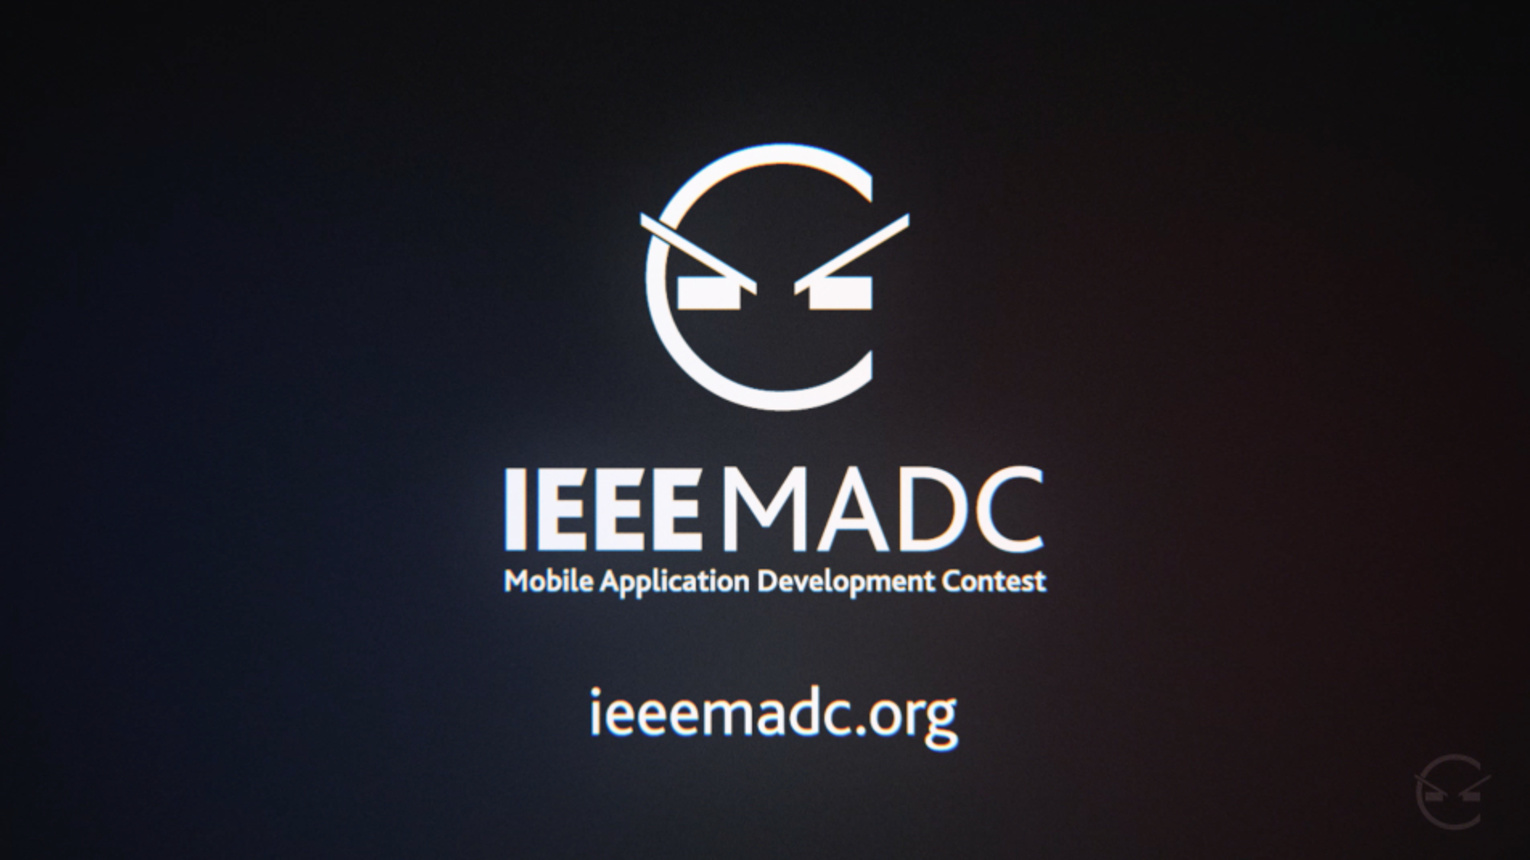 IEEEmadC - Mobile Applications Development Contest